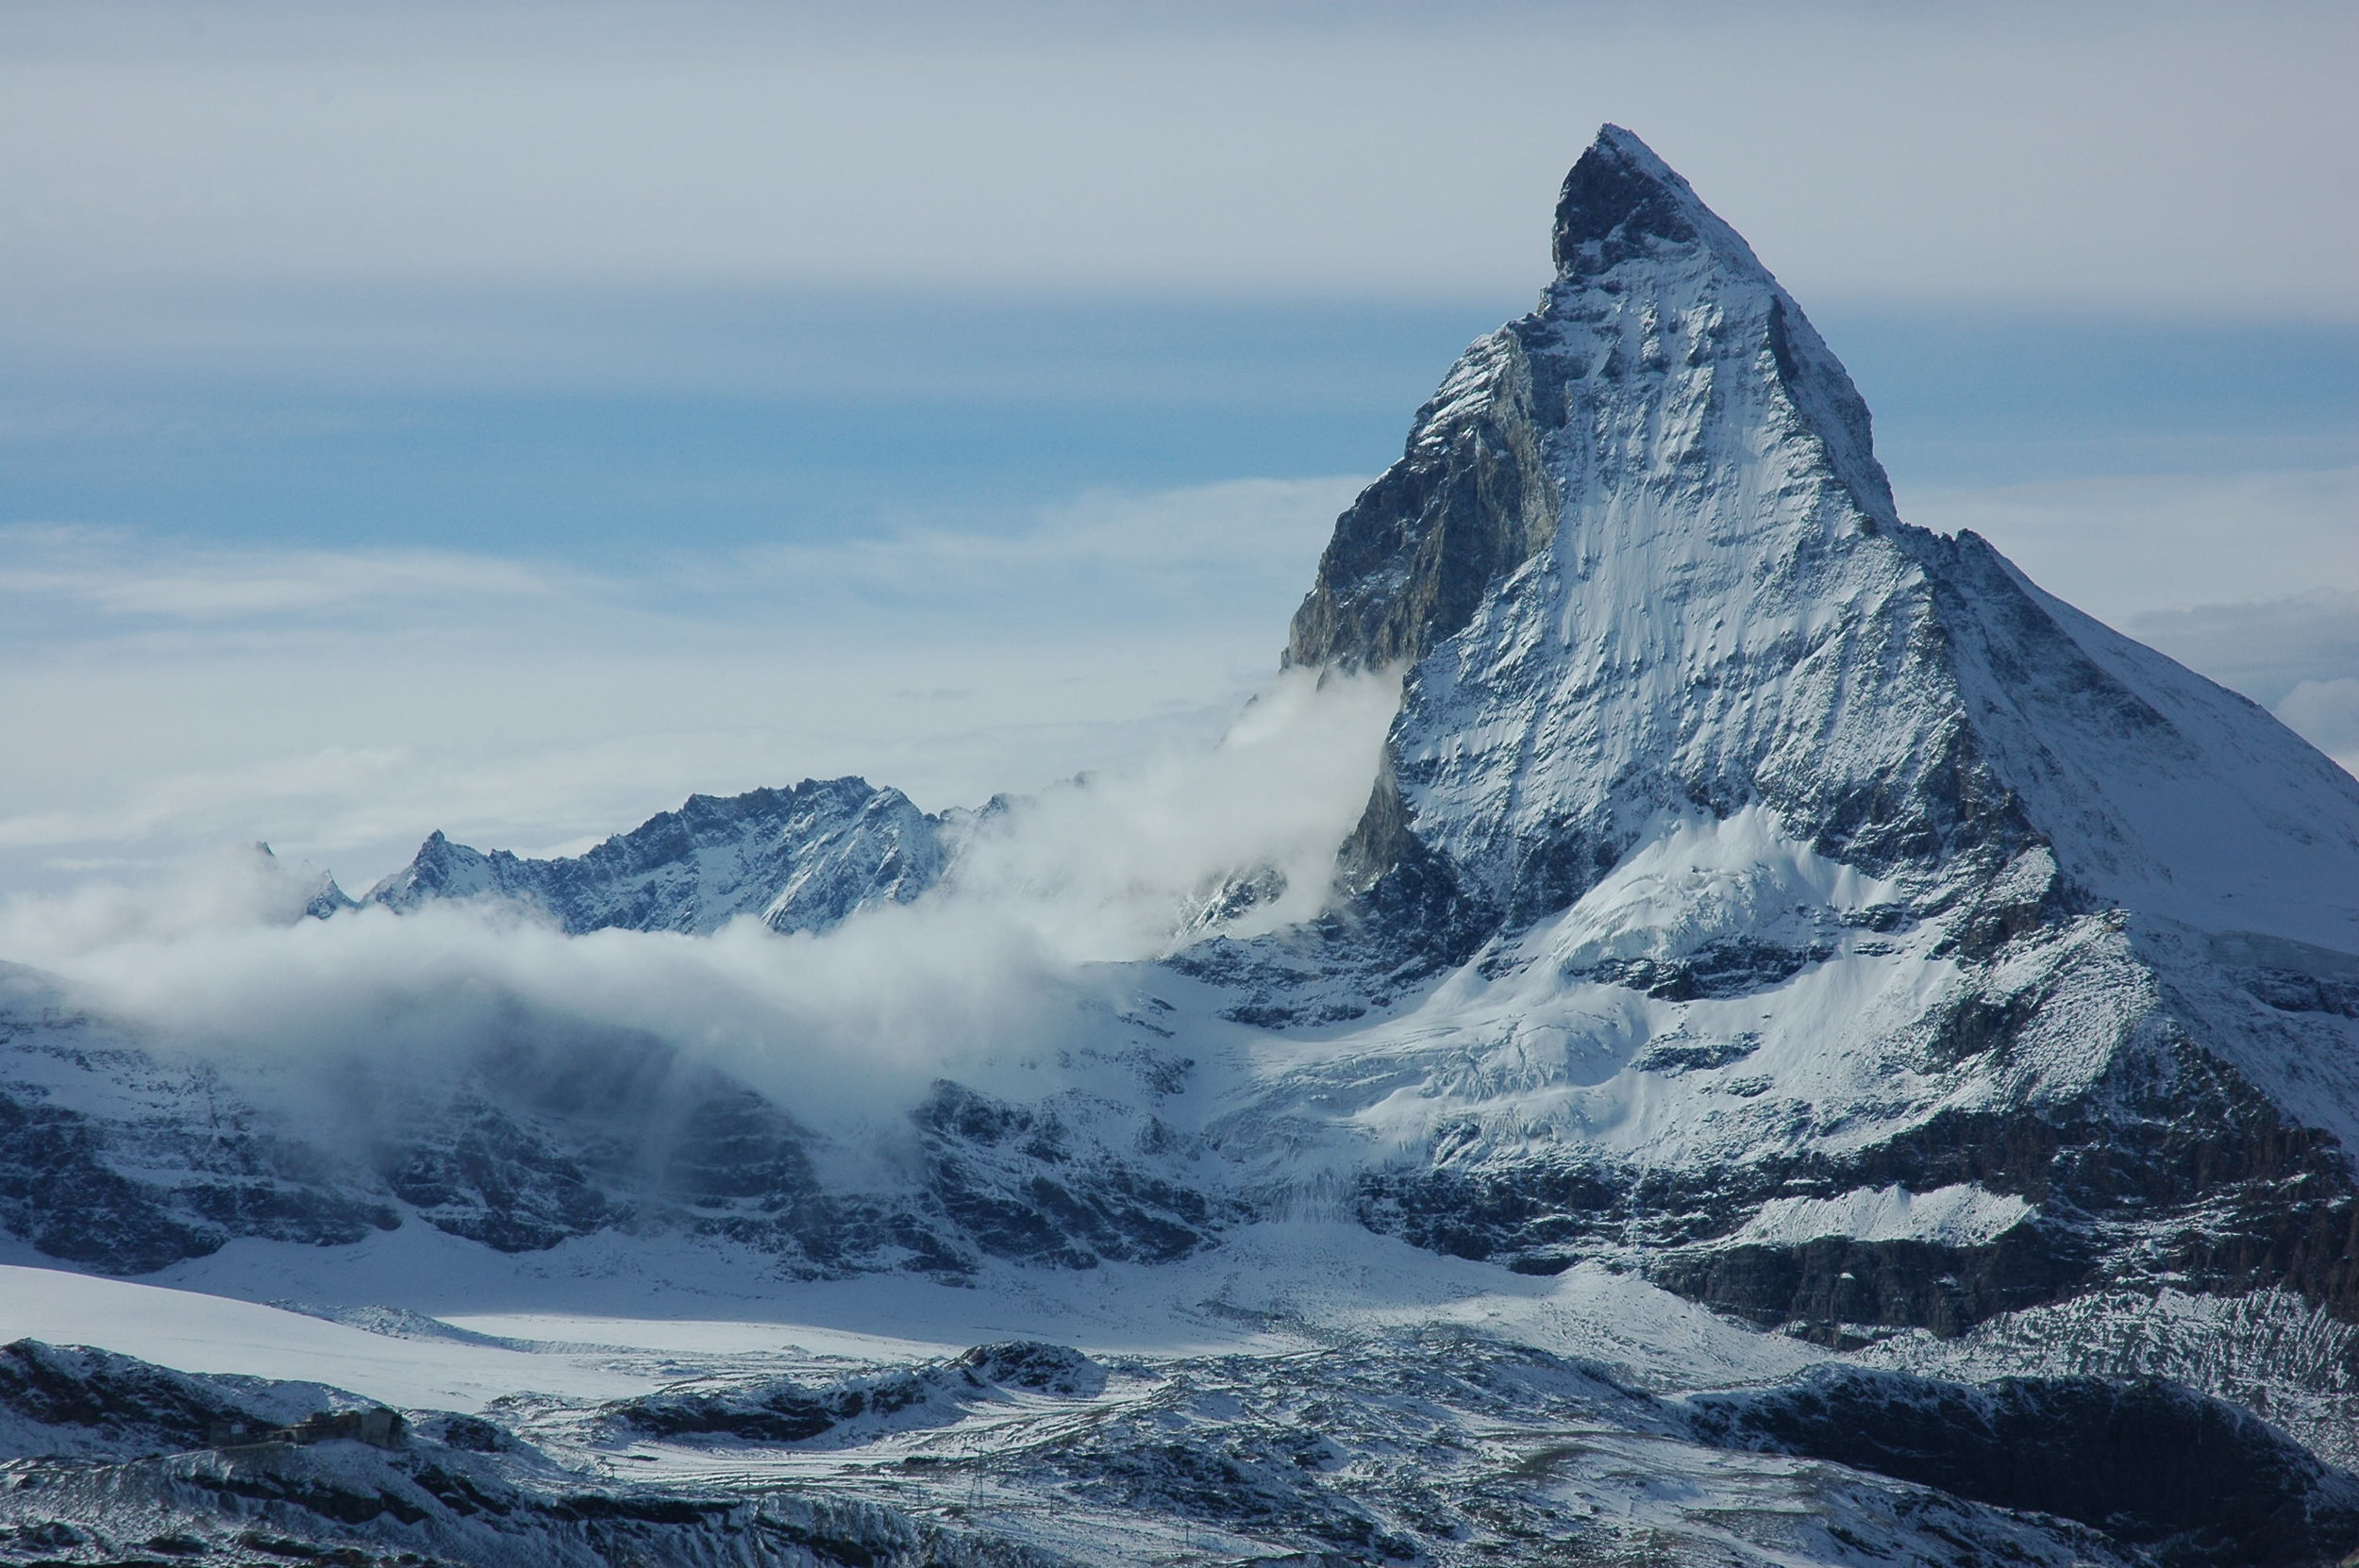 East and North side of the Matterhorn, photograph taken from the village of Zermatt.